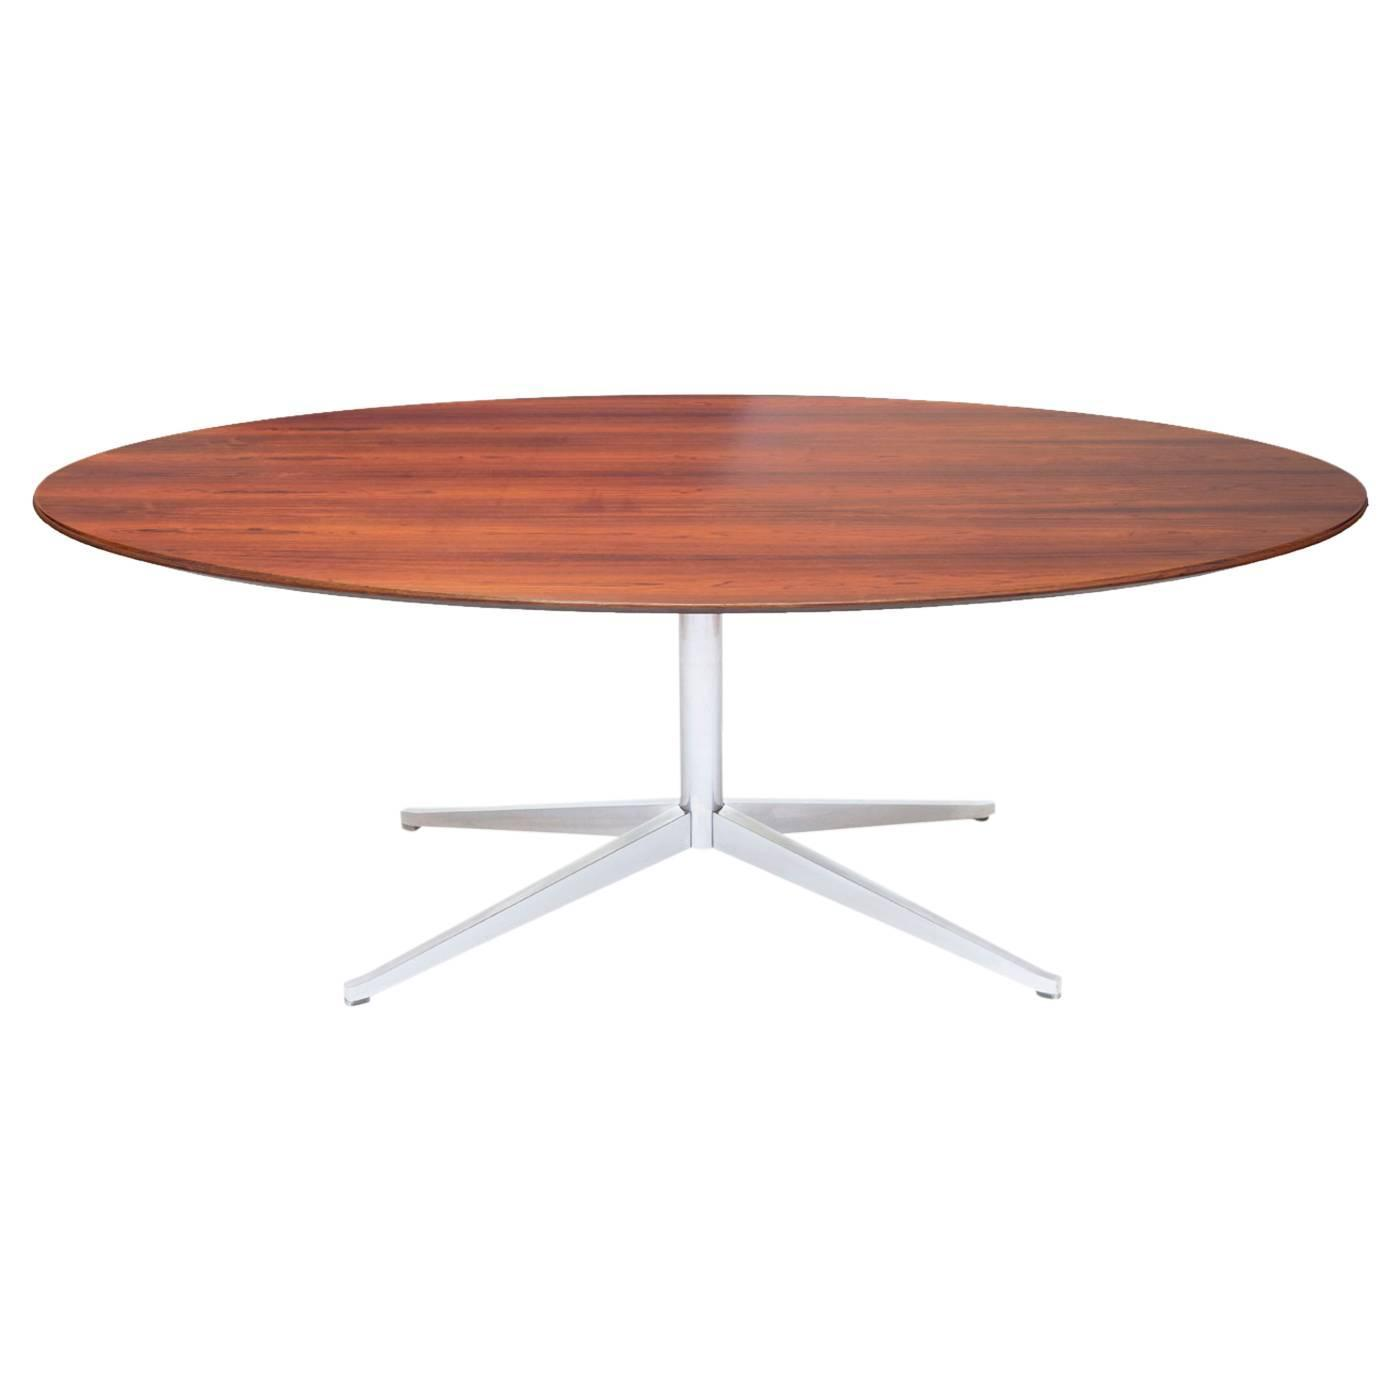 Knoll Dining Table Florence Knoll Dining Table At  : 3534702z from www.amlibgroup.com size 1400 x 1400 jpeg 33kB